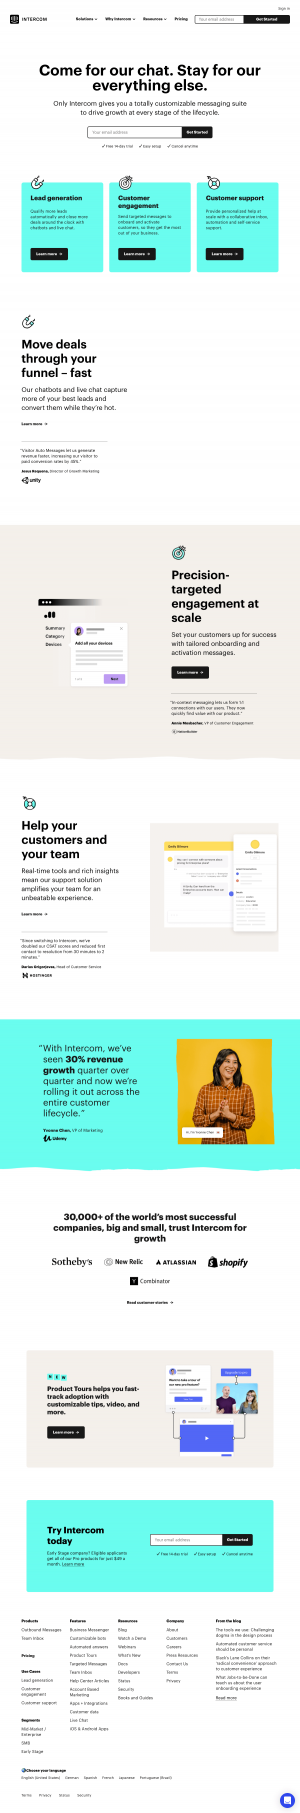 Homepage - intercom